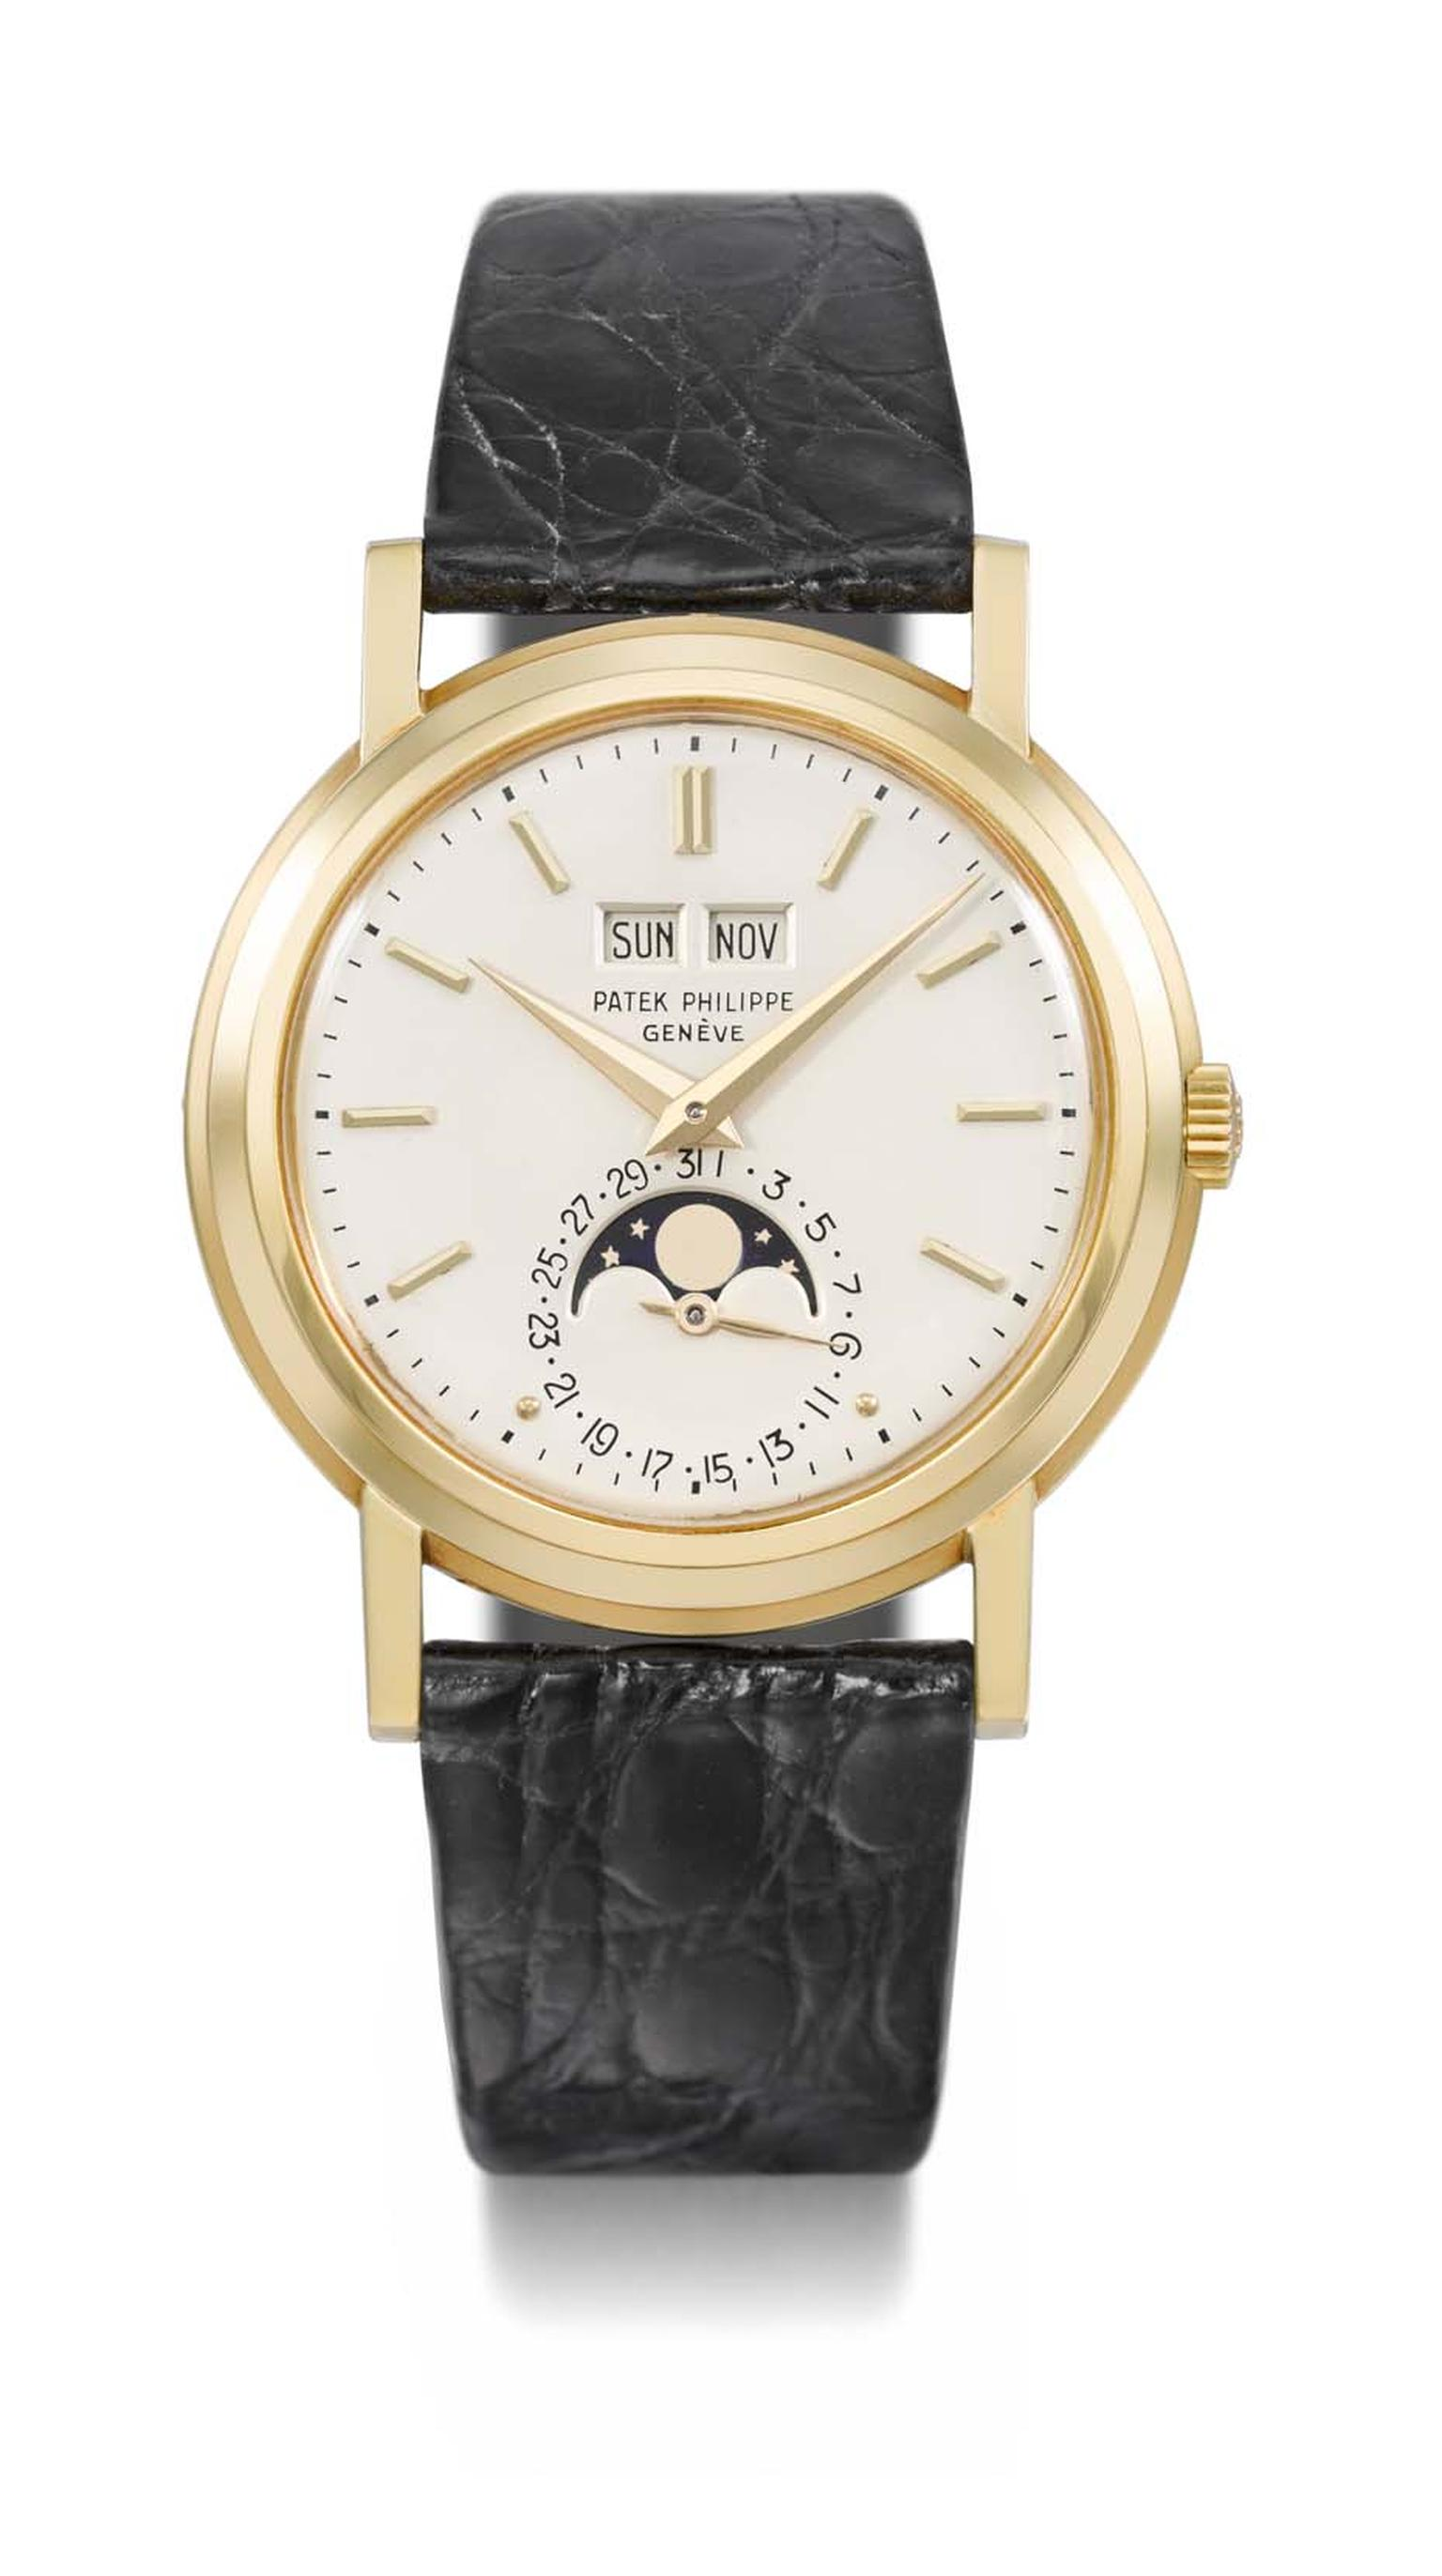 "The Patek Philippe ""Tre Scalini"" Ref 3449 watch is one of only three made and features a hand-­wound movement, perpetual calendar and Moon phases."